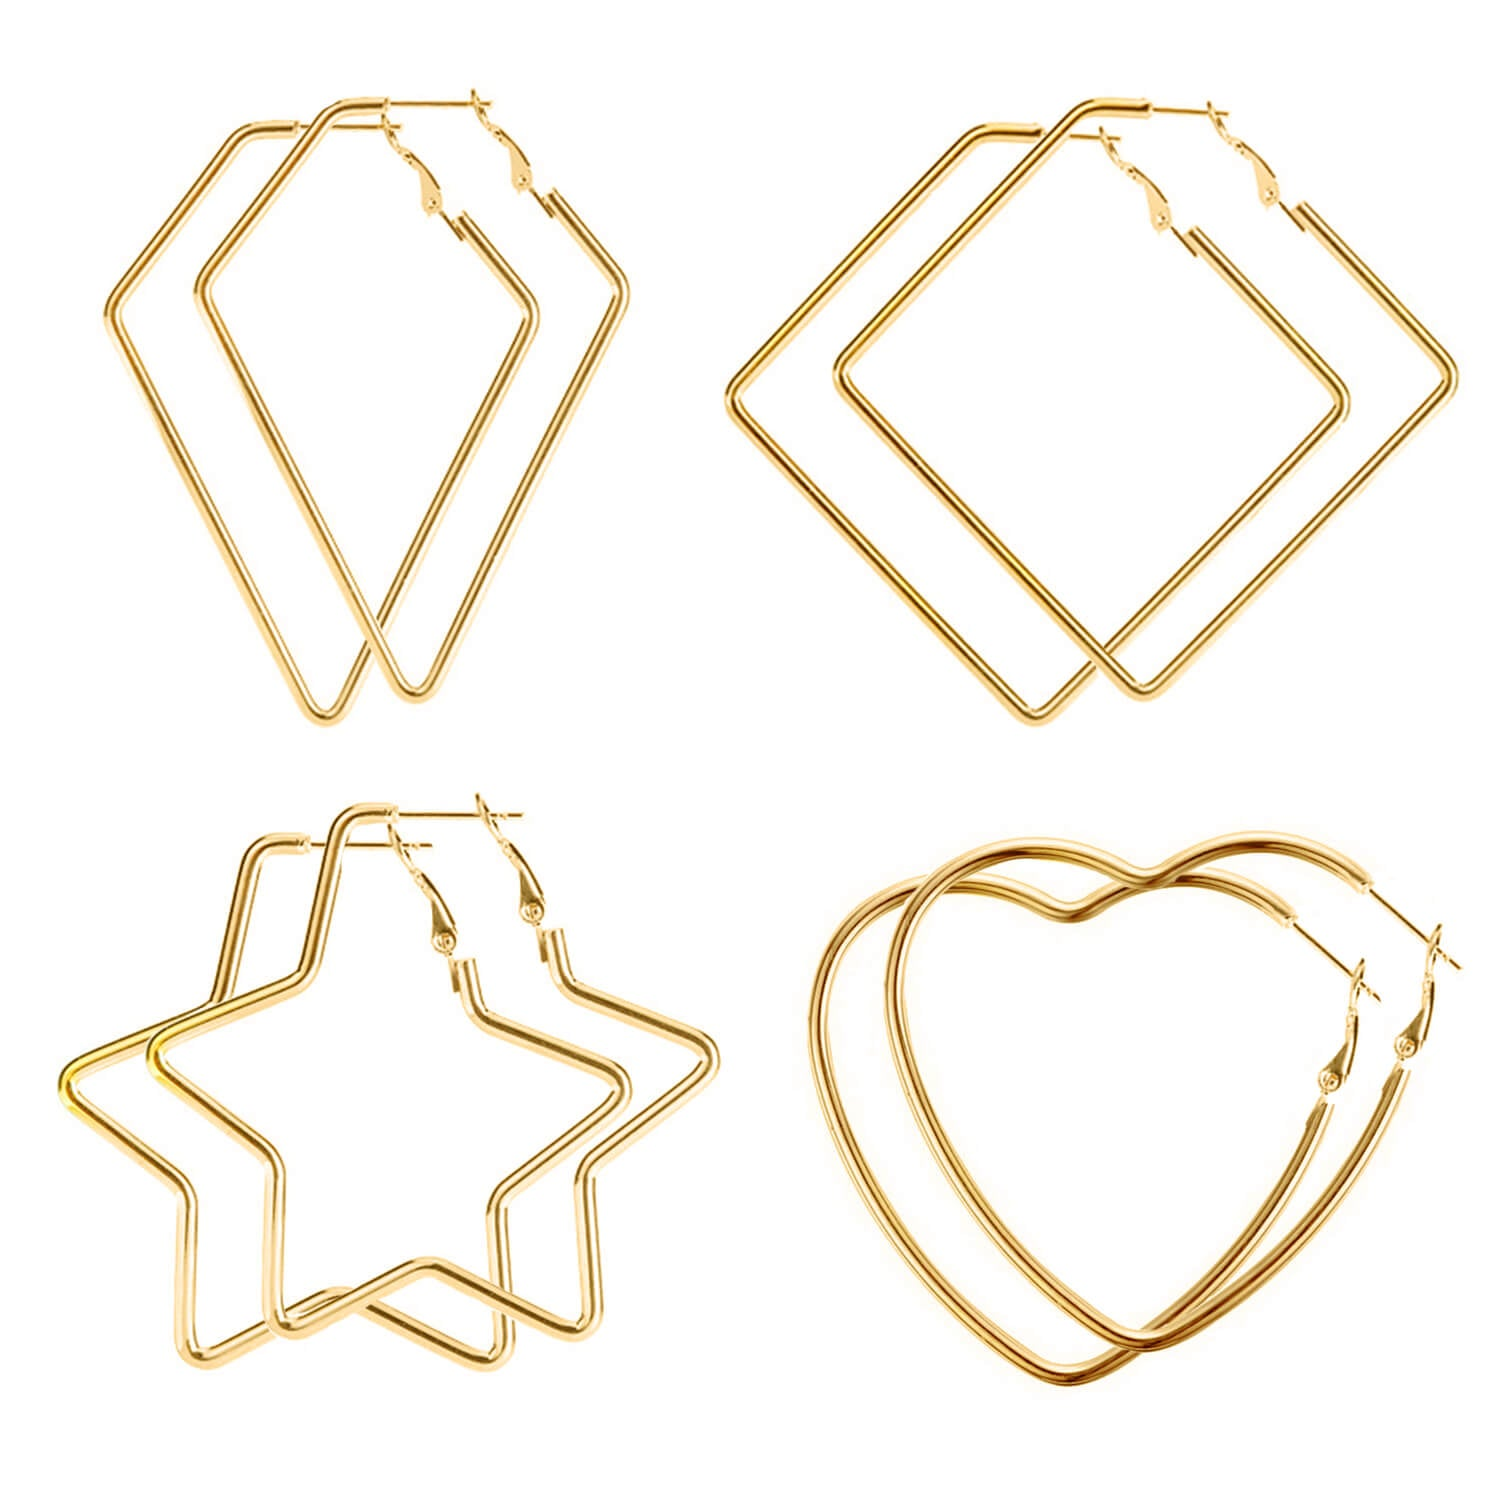 4 Pairs Geometric Big Hoop Earrings Set for Women Girls